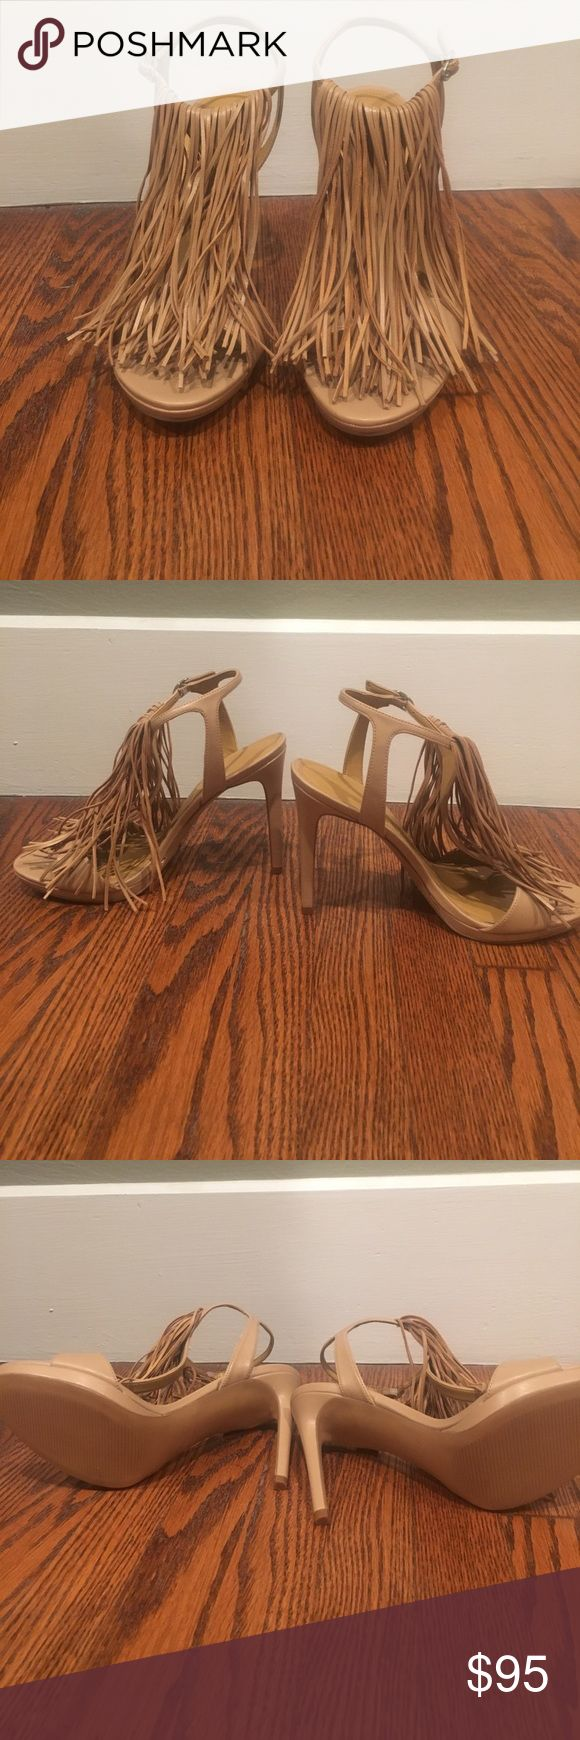 NWOT Kendall and Kylie Fringe Heels Brand new without tags. Never been worn! 4.5 inch heel. Kendall & Kylie Shoes Heels